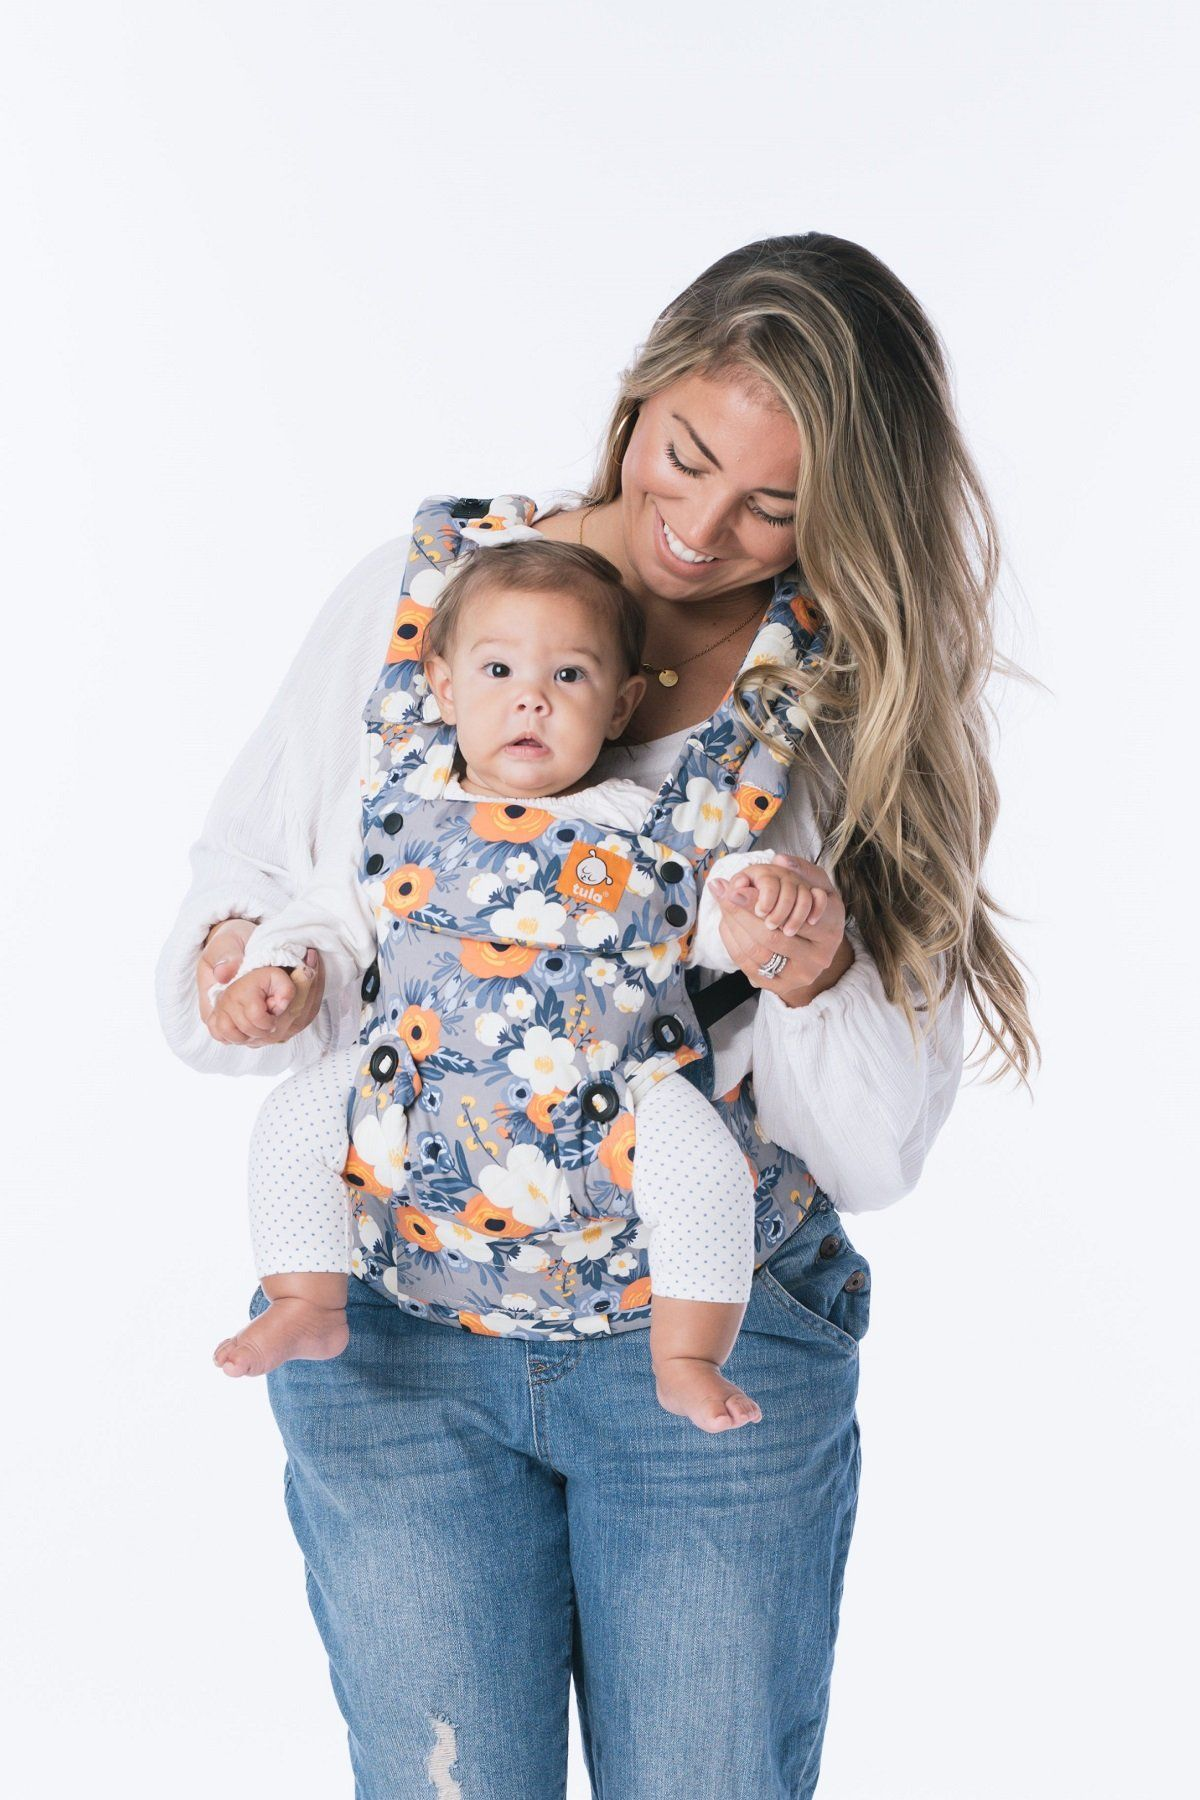 767269cb1ef French Marigold - Tula Explore Baby Carrier - Baby Tula. A bit of Parisian  flair blossoms from an updated version of a favorite print.